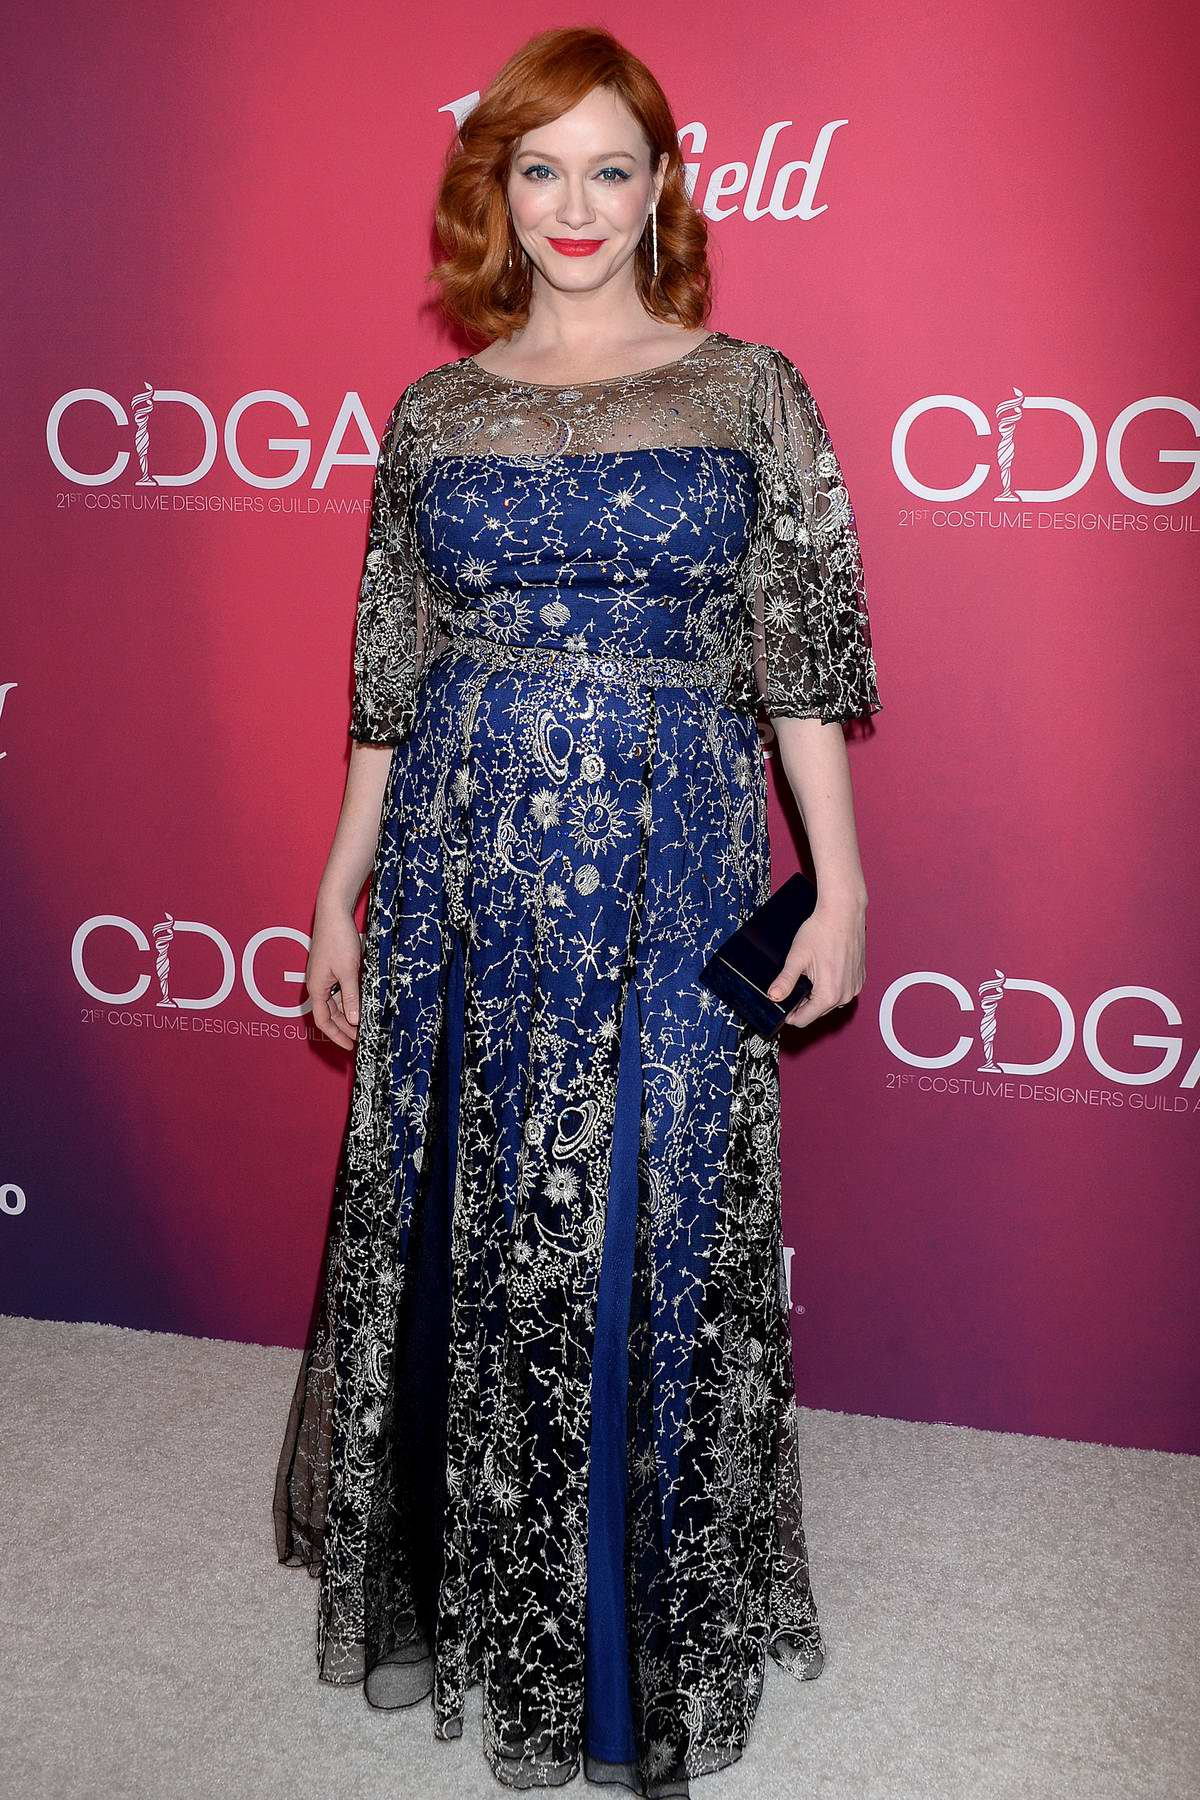 Christina Hendricks attends the 21st Costume Designers Guild Awards in Los Angeles